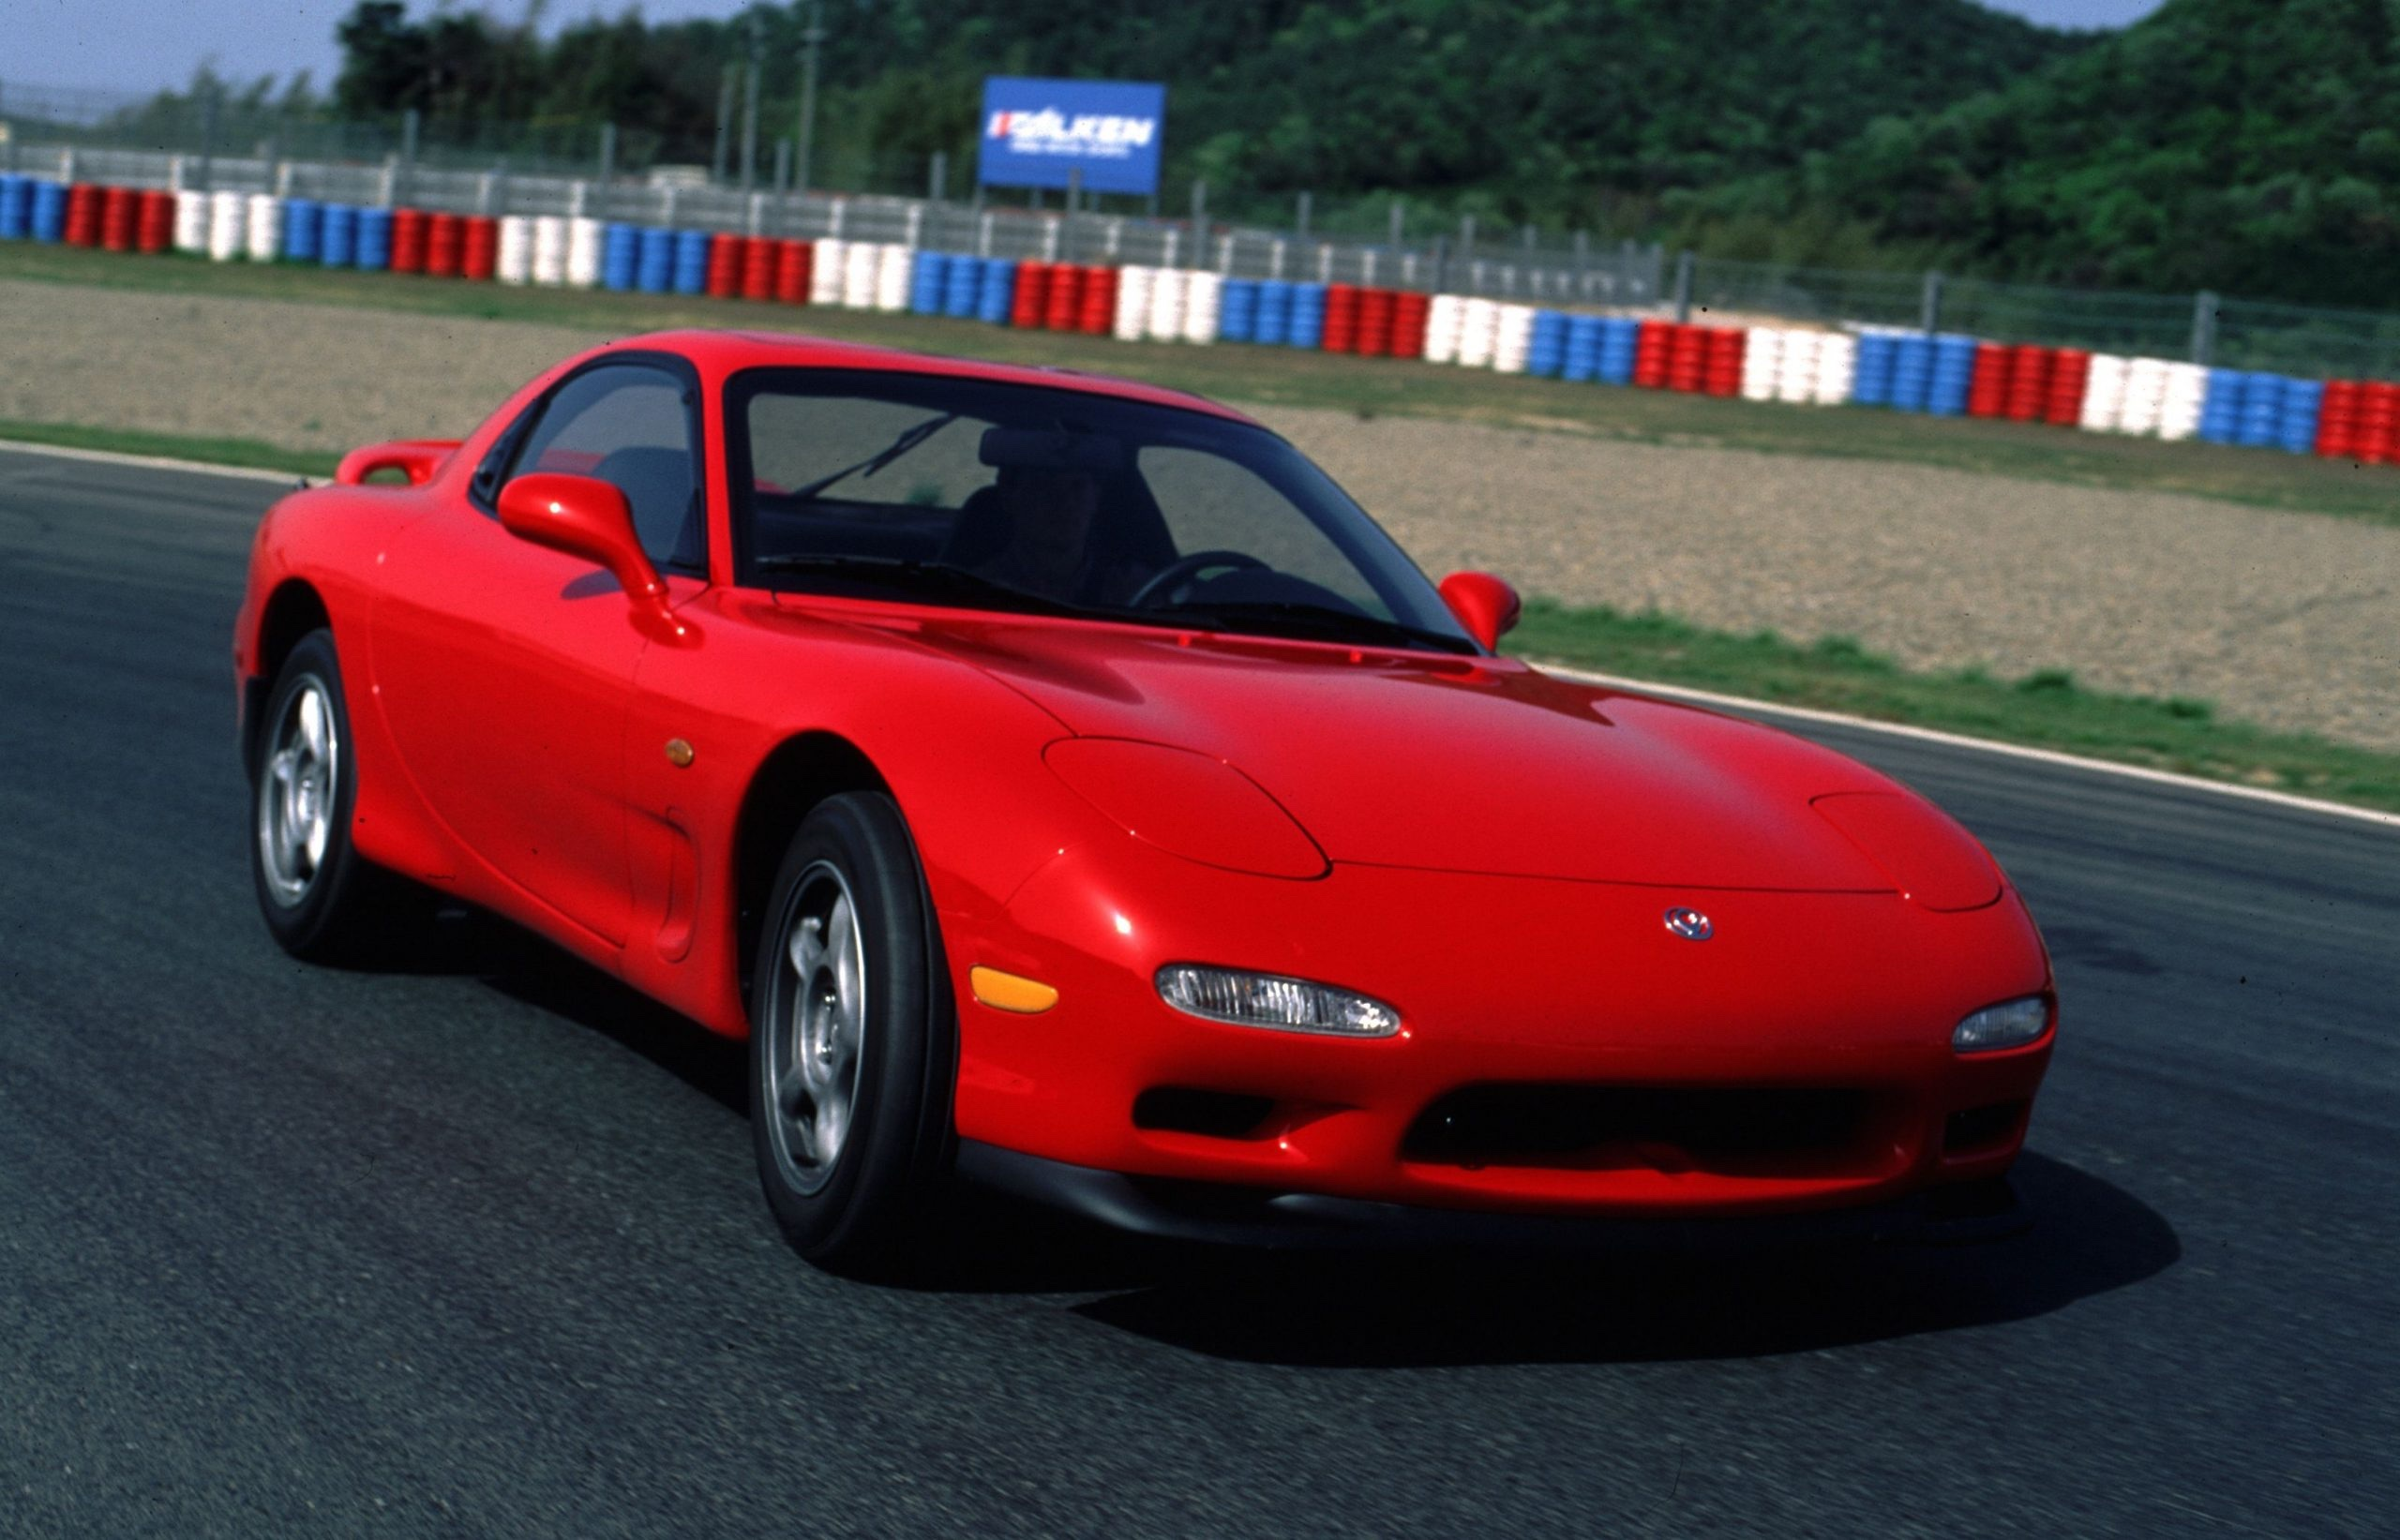 Mazda starts making heritage parts for the RX-7